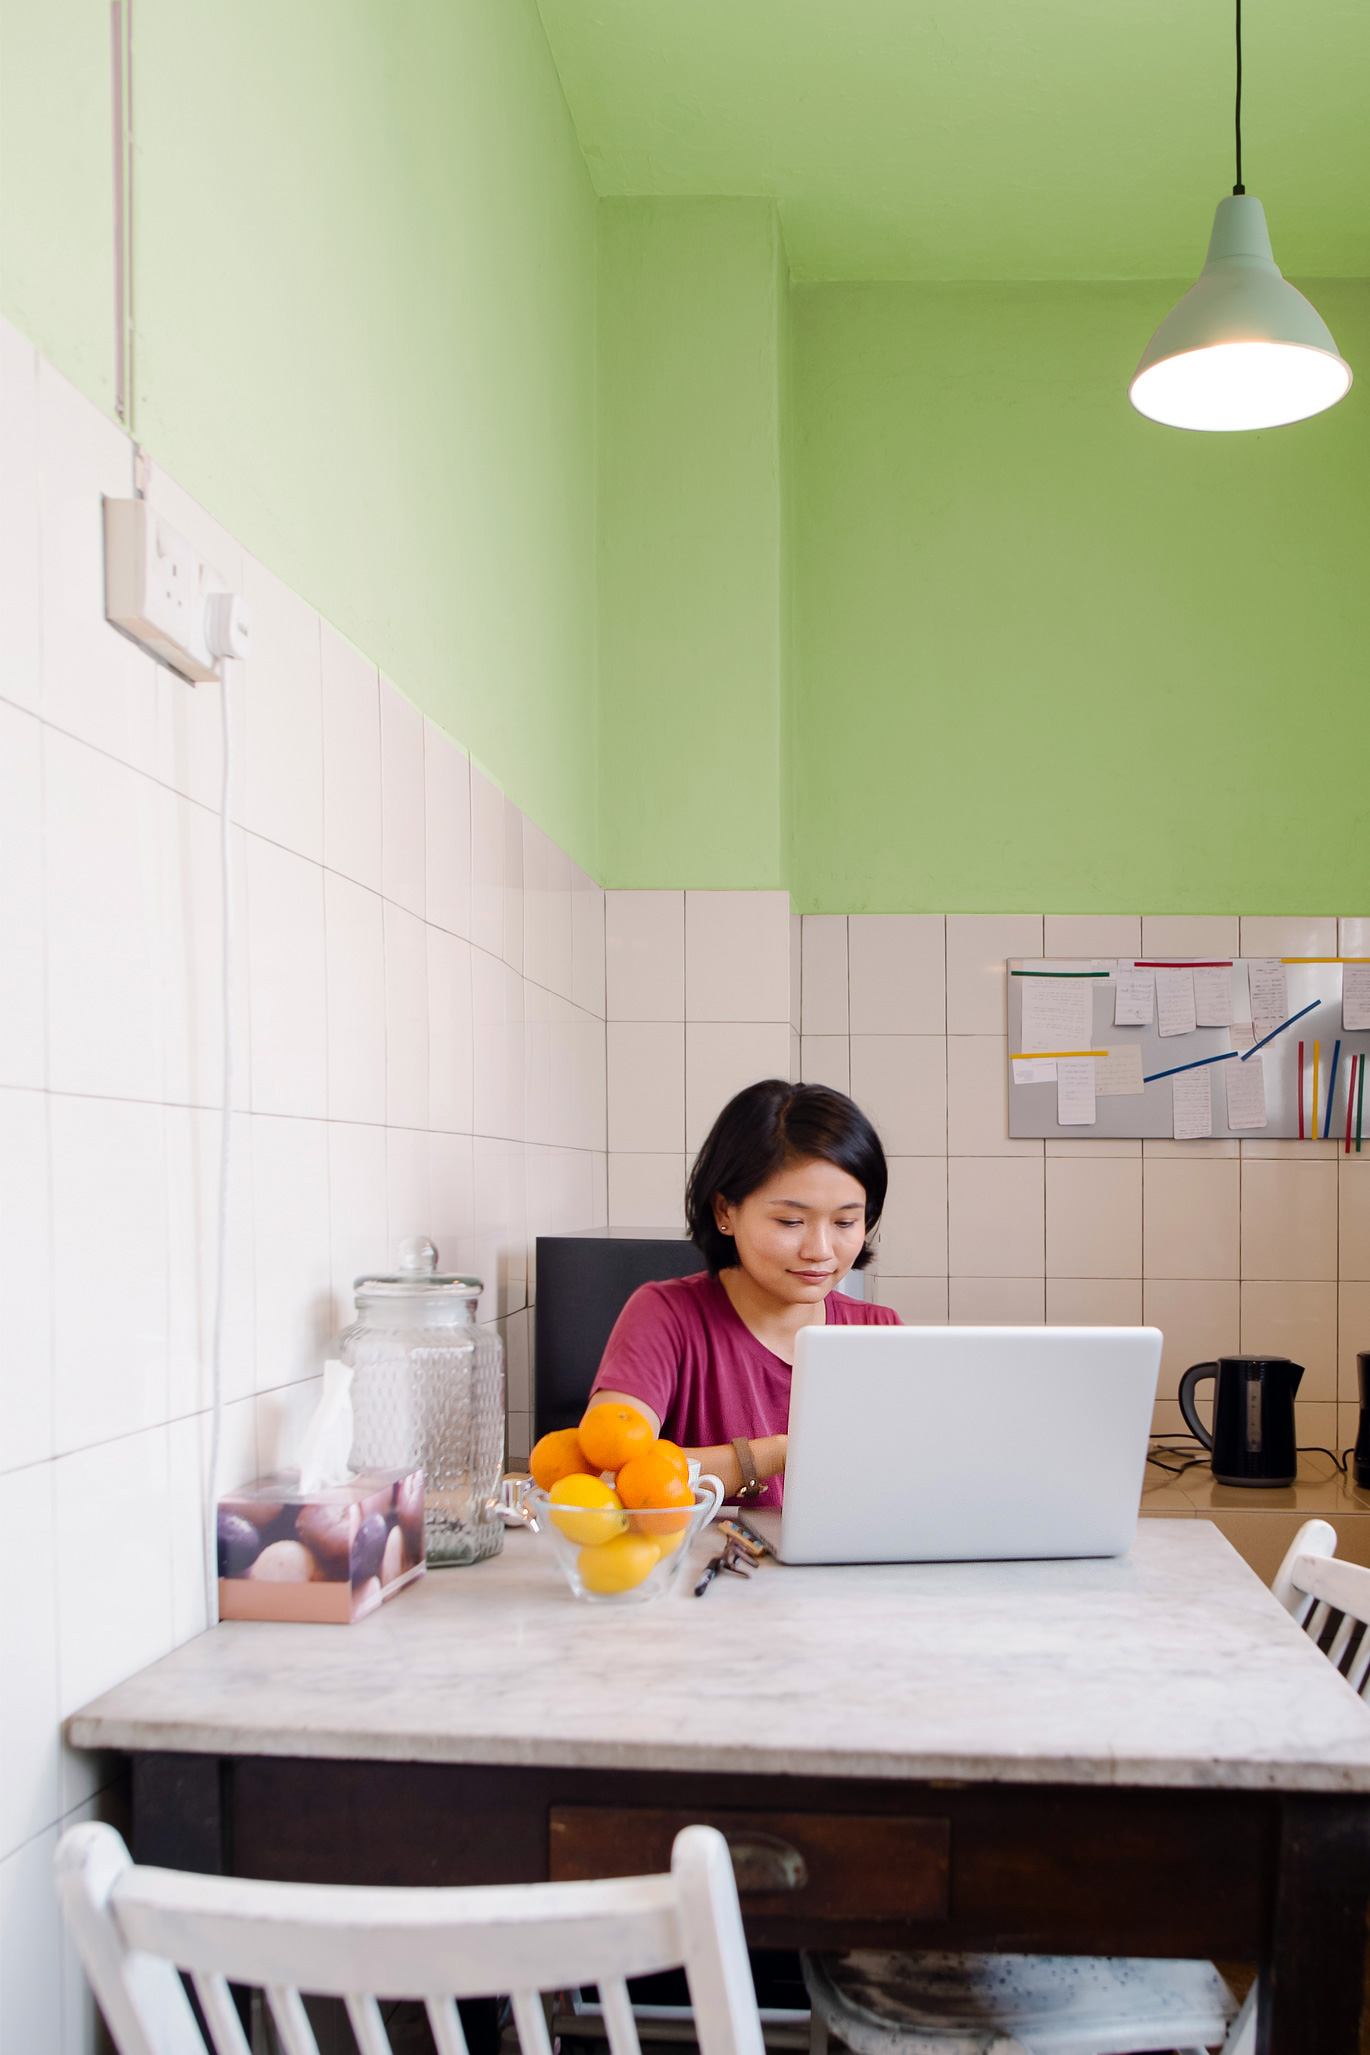 Penny-pinching woman in her kitchen